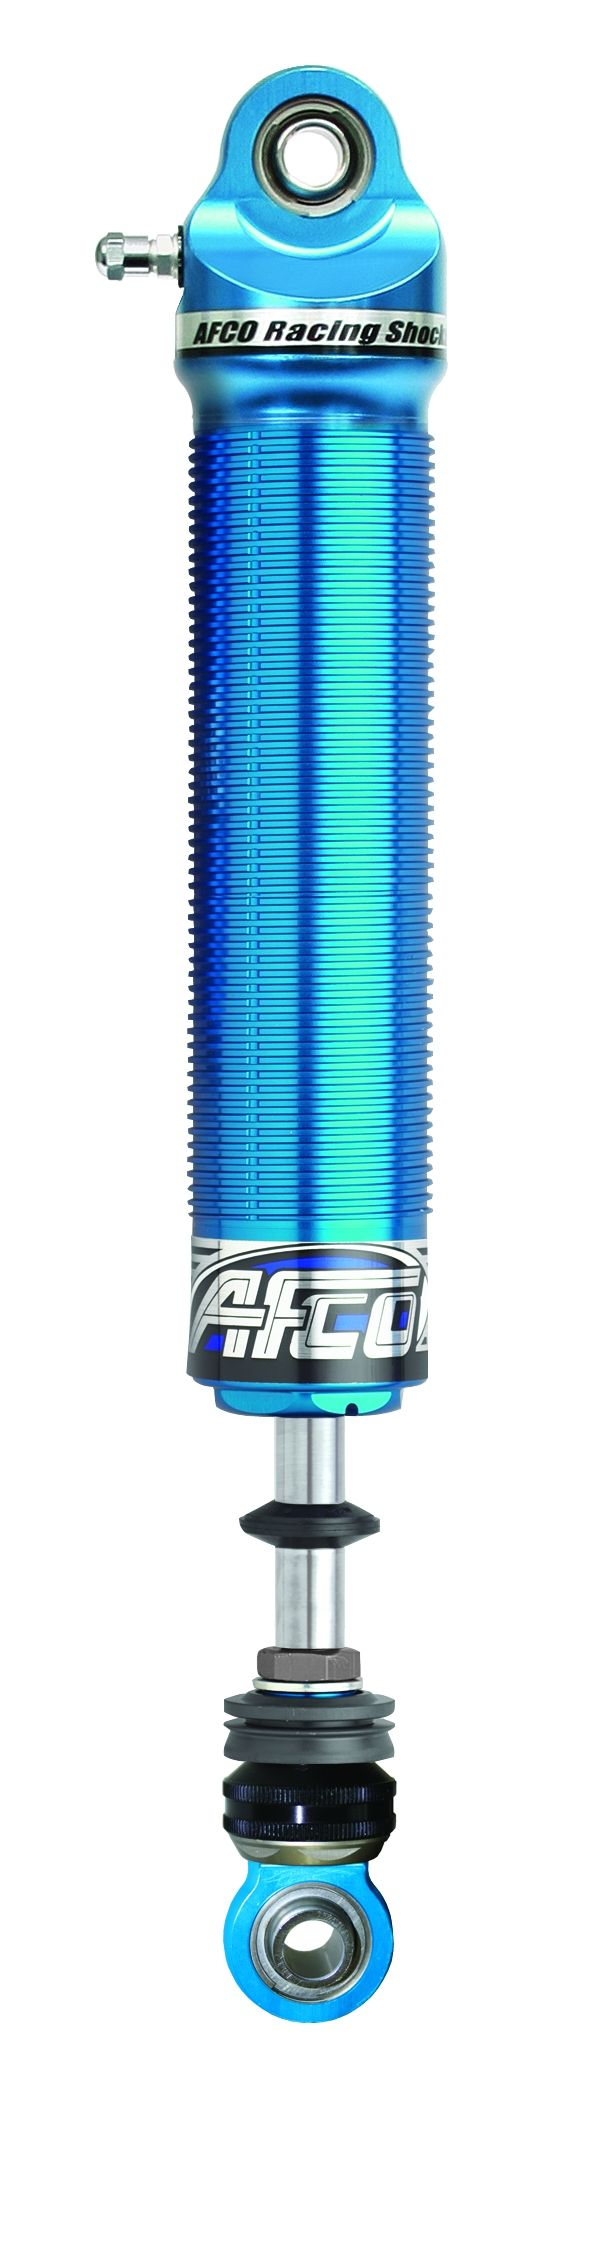 Aluminum Shock Monotube 26 Series Threaded Gas Shock 9 Inch, Comp 4/Reb 3-6